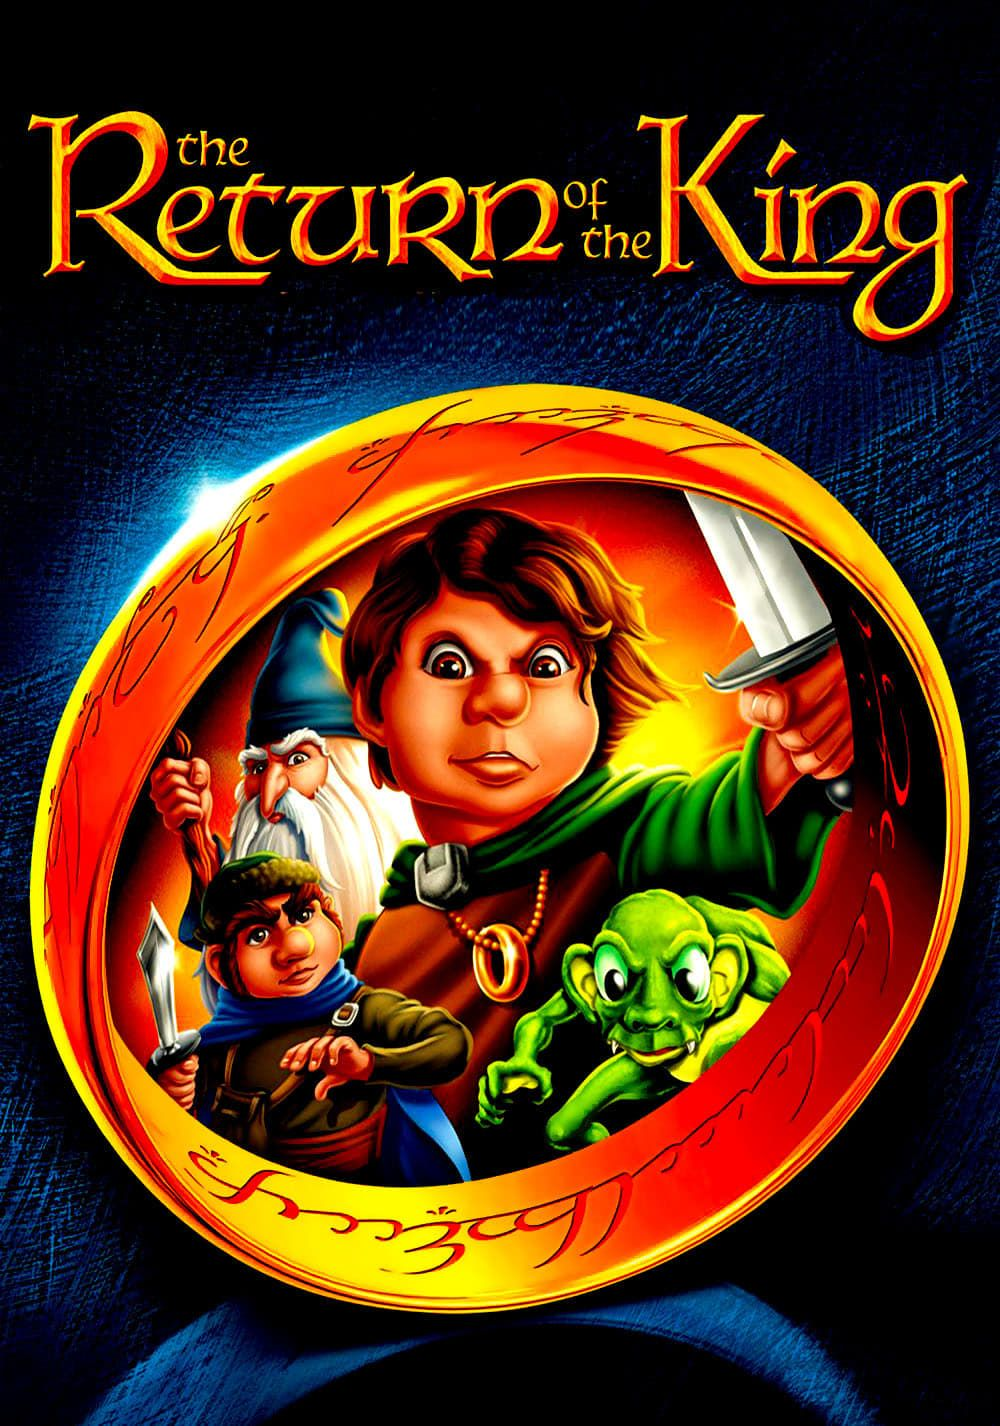 Descargar The Return of the King [1980] PELICULA COMPLETA